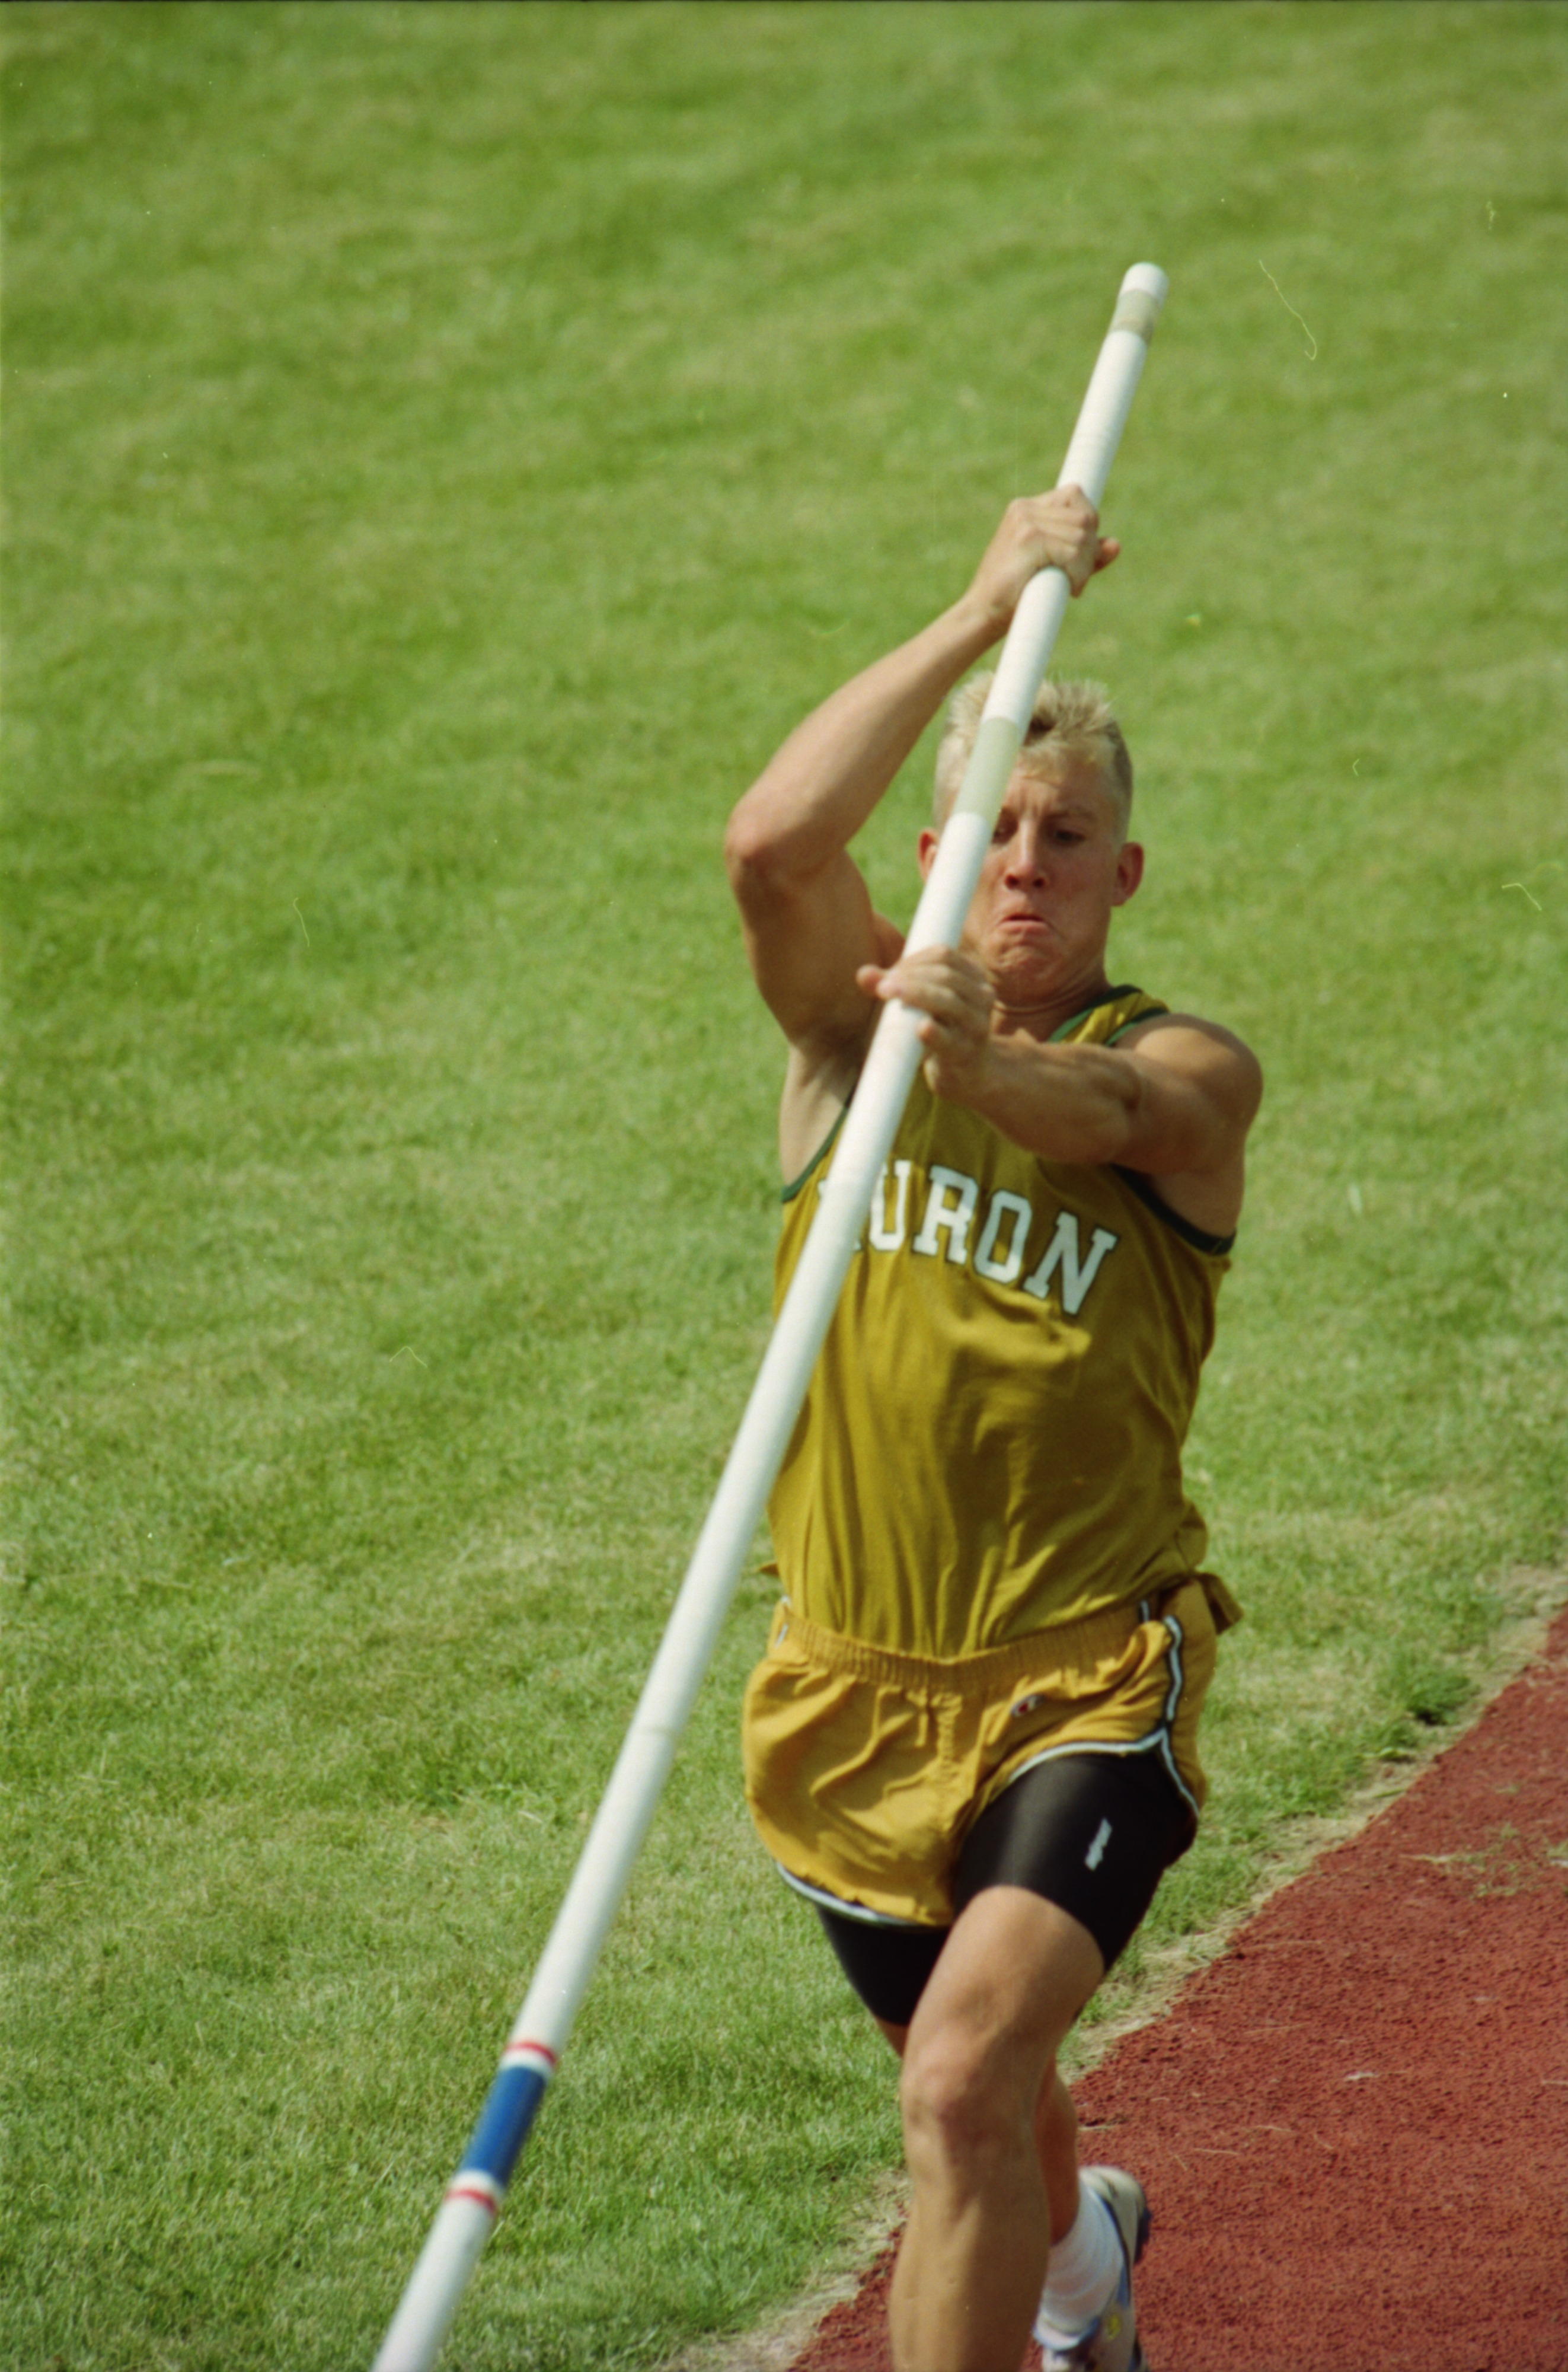 Kyle Novak Competes in Pole Vault at State Track Meet, June 1994 image